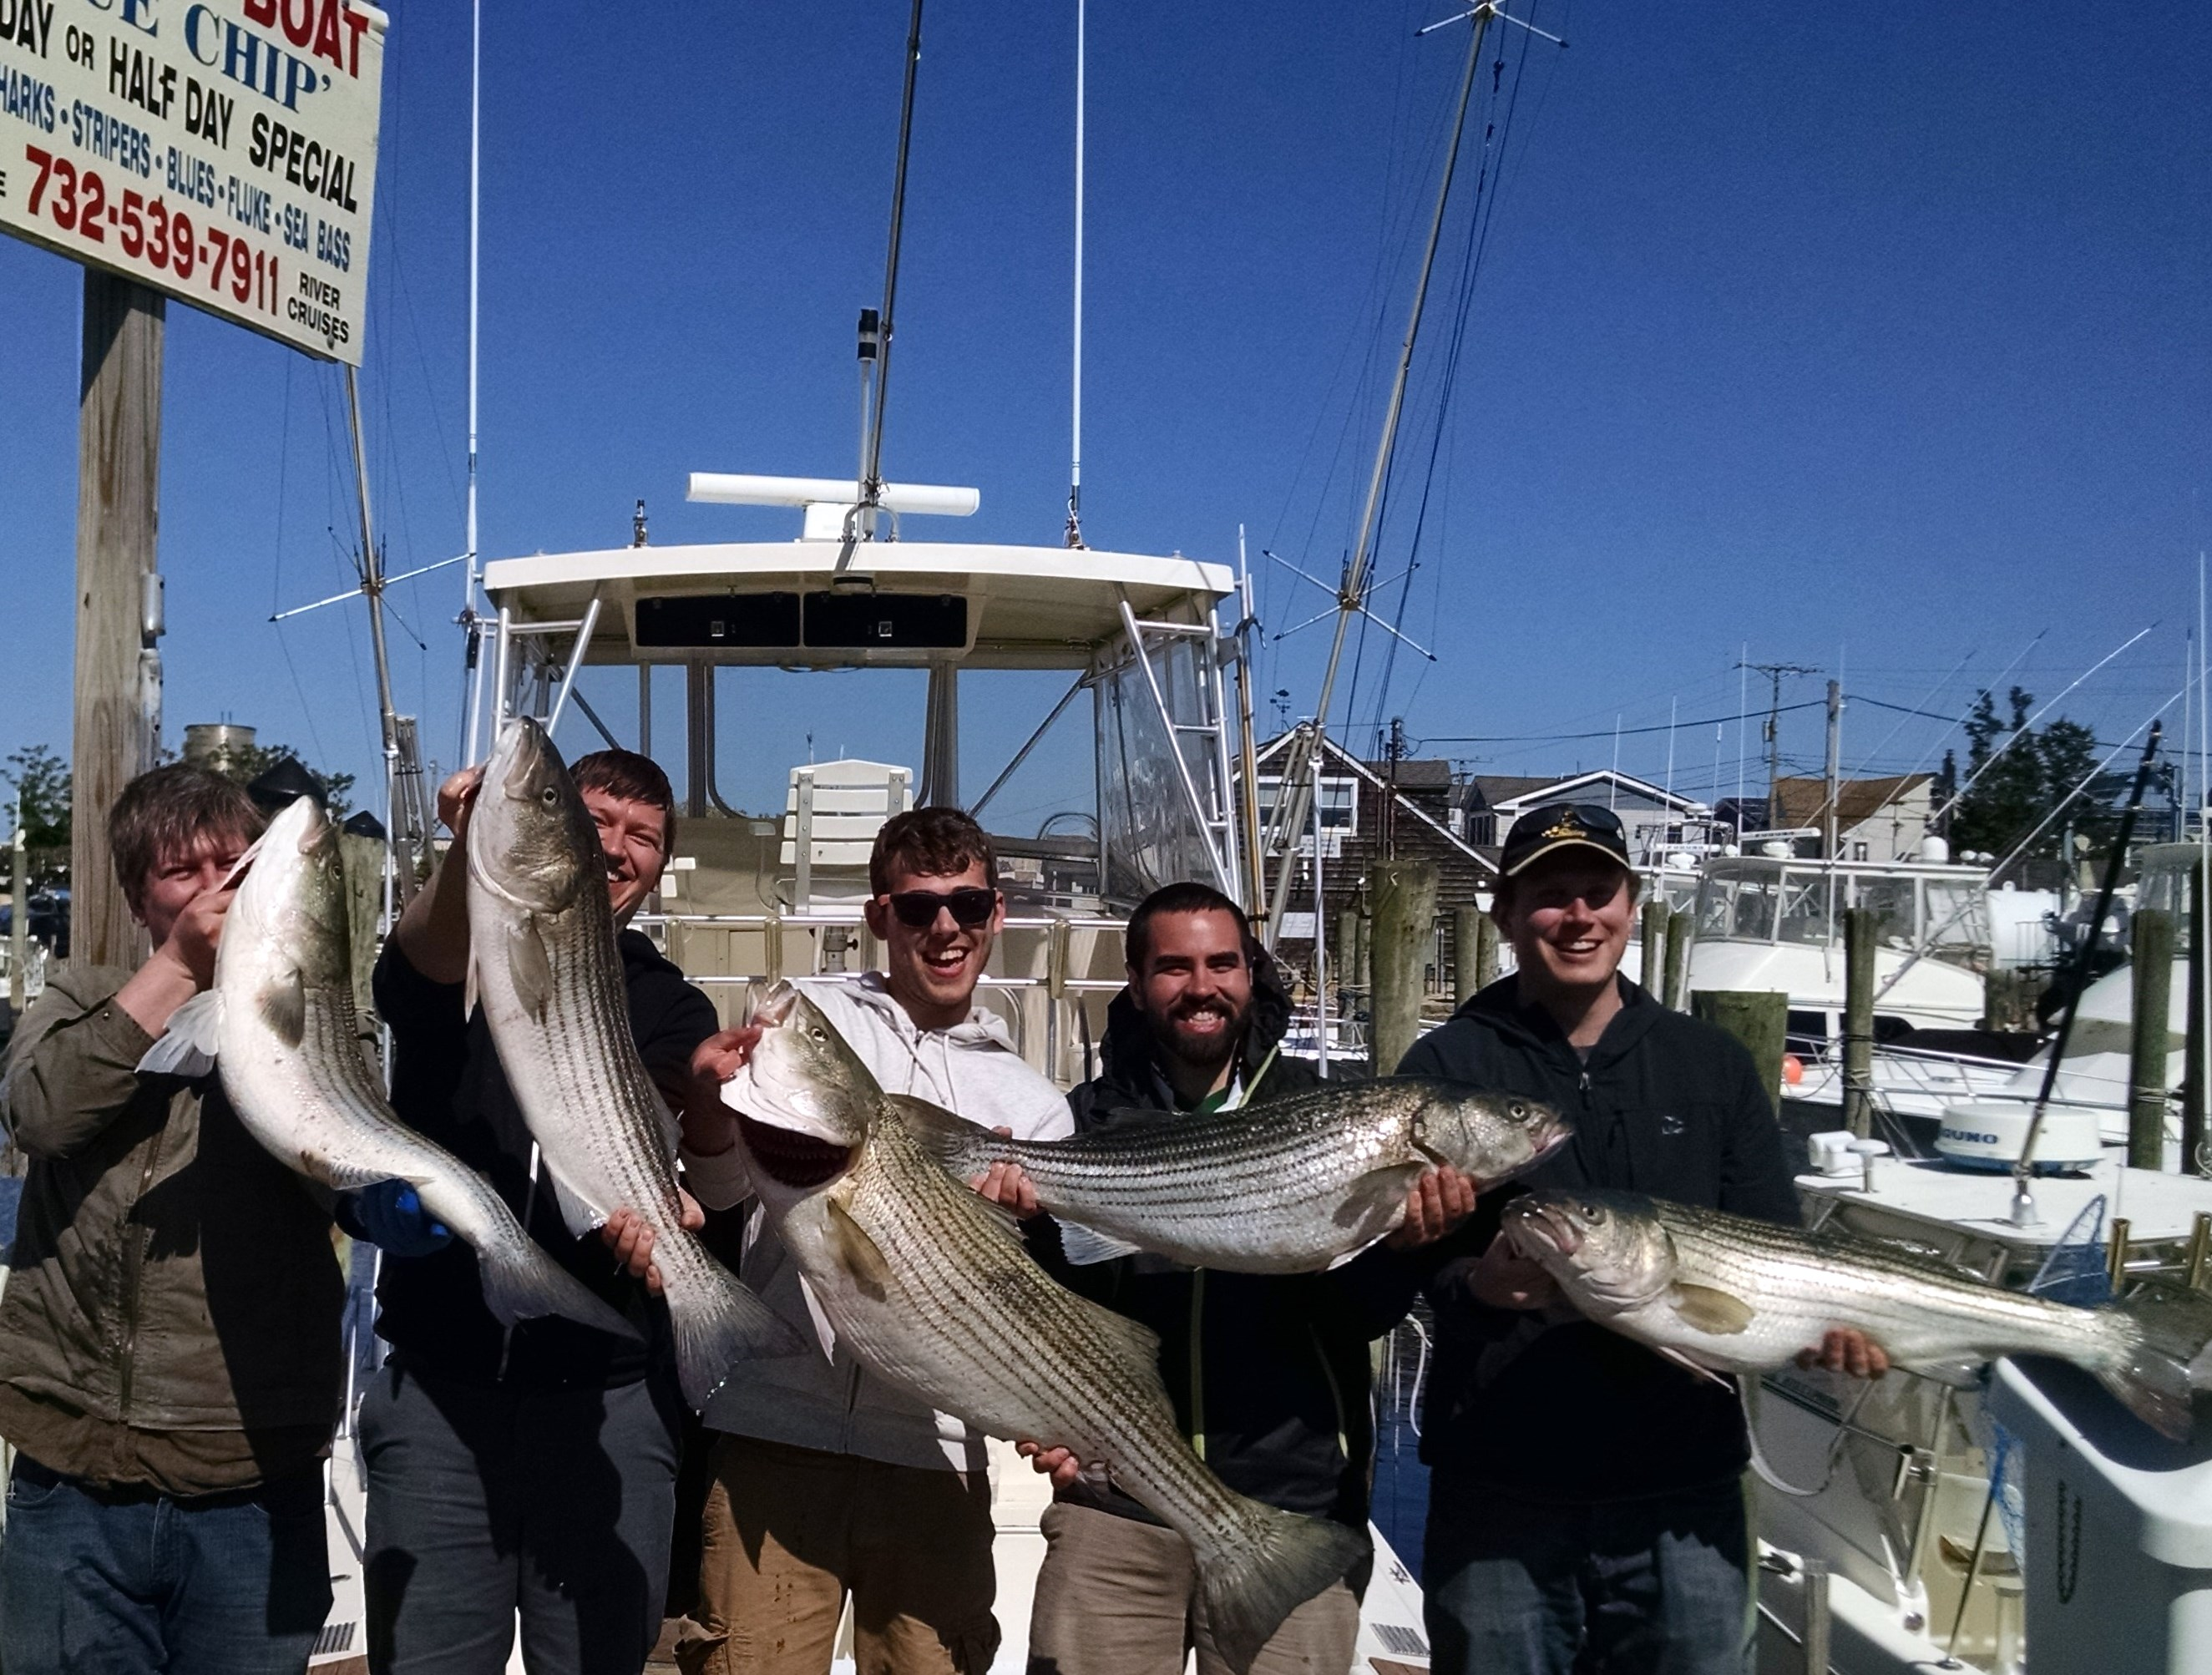 Point pleasant nj fri 5 23 kile and his friends from for Point pleasant fishing report